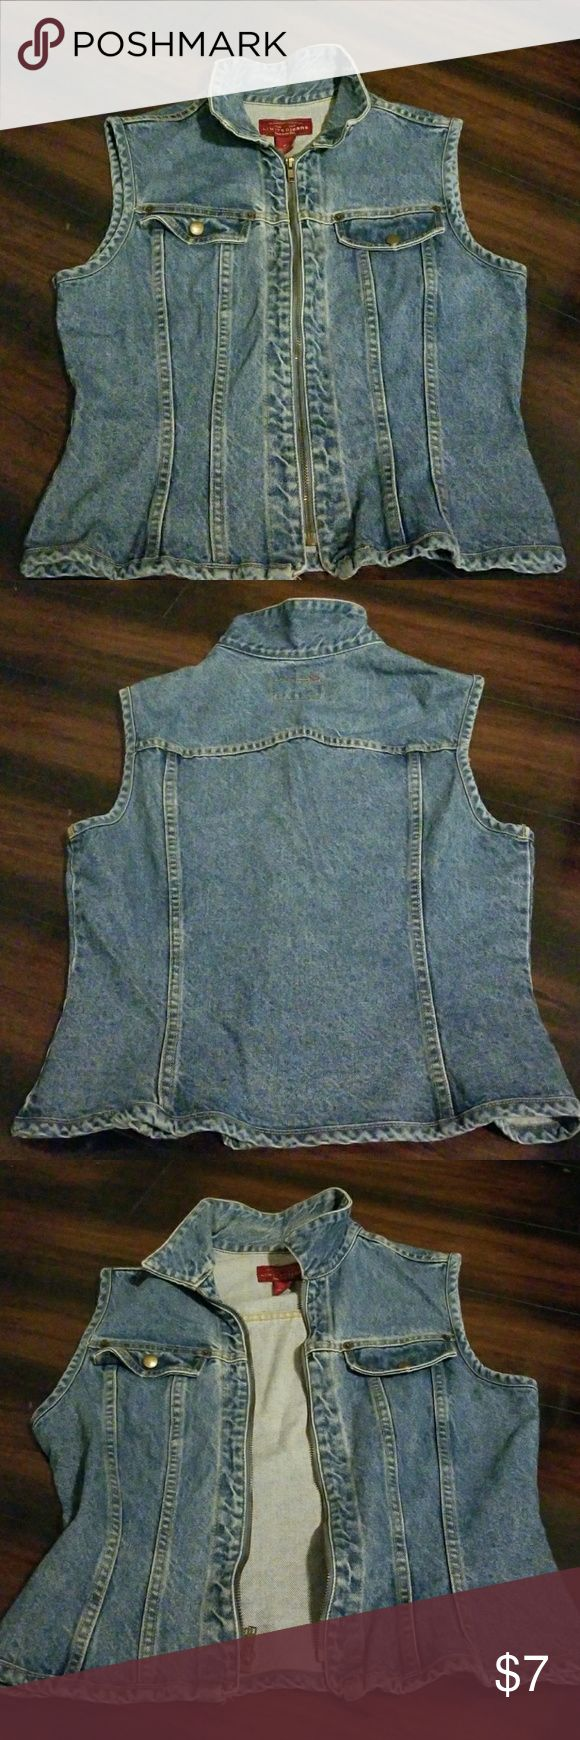 Short sleeve jean jacket Lightwashed fitted Jackets & Coats Jean Jackets